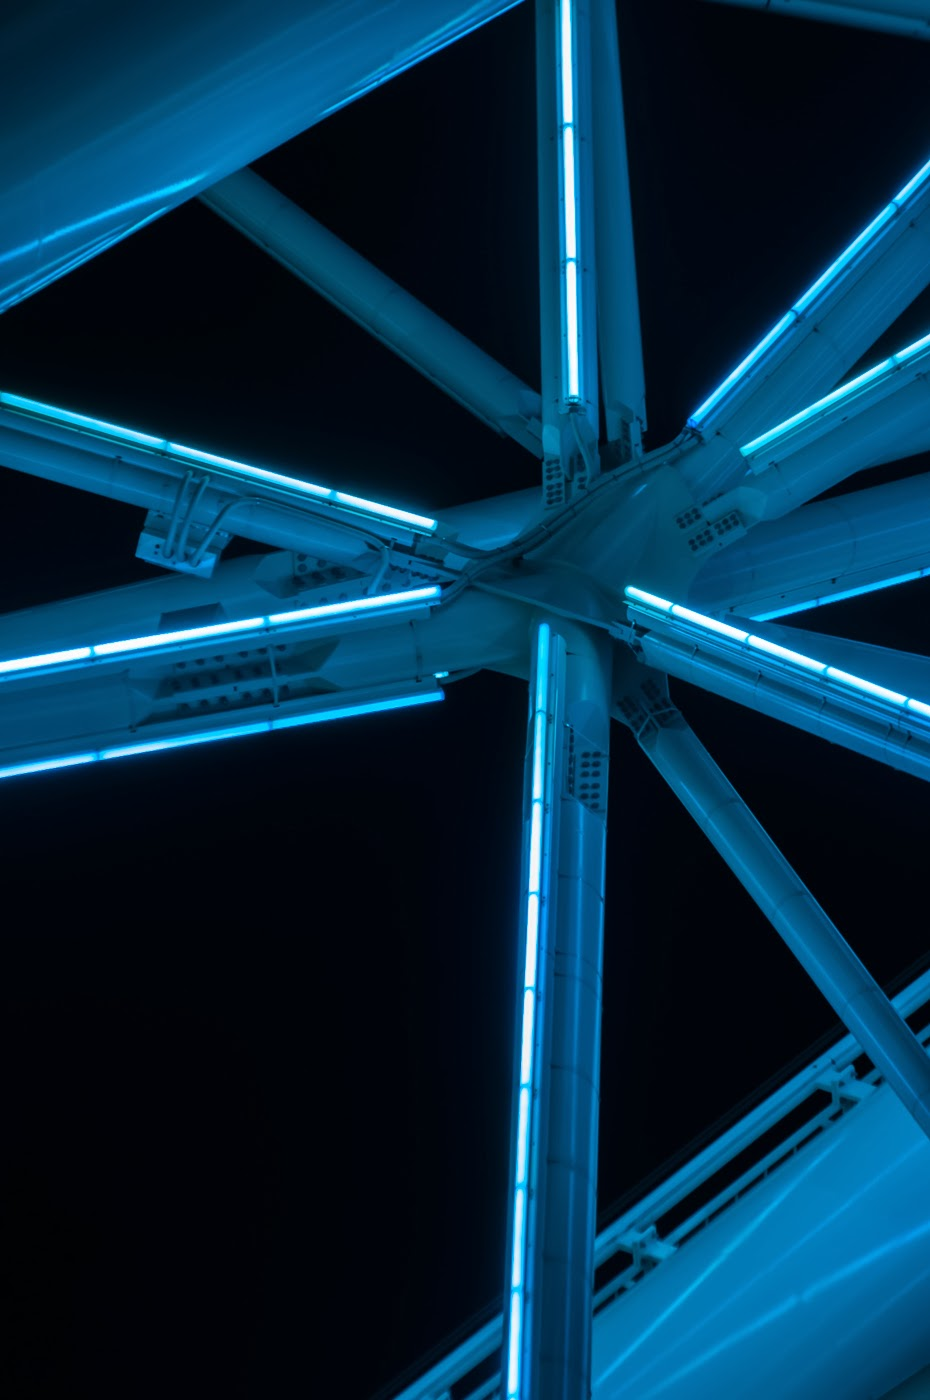 Southern star, Melbourne star, wheel, observatory wheel, Australia, sanoyas rides, corporation, architecture, architectural, architects, abstract, abstractional, abstraction, Melbourne, ride, tim macauley, detail, steel, structure, star,